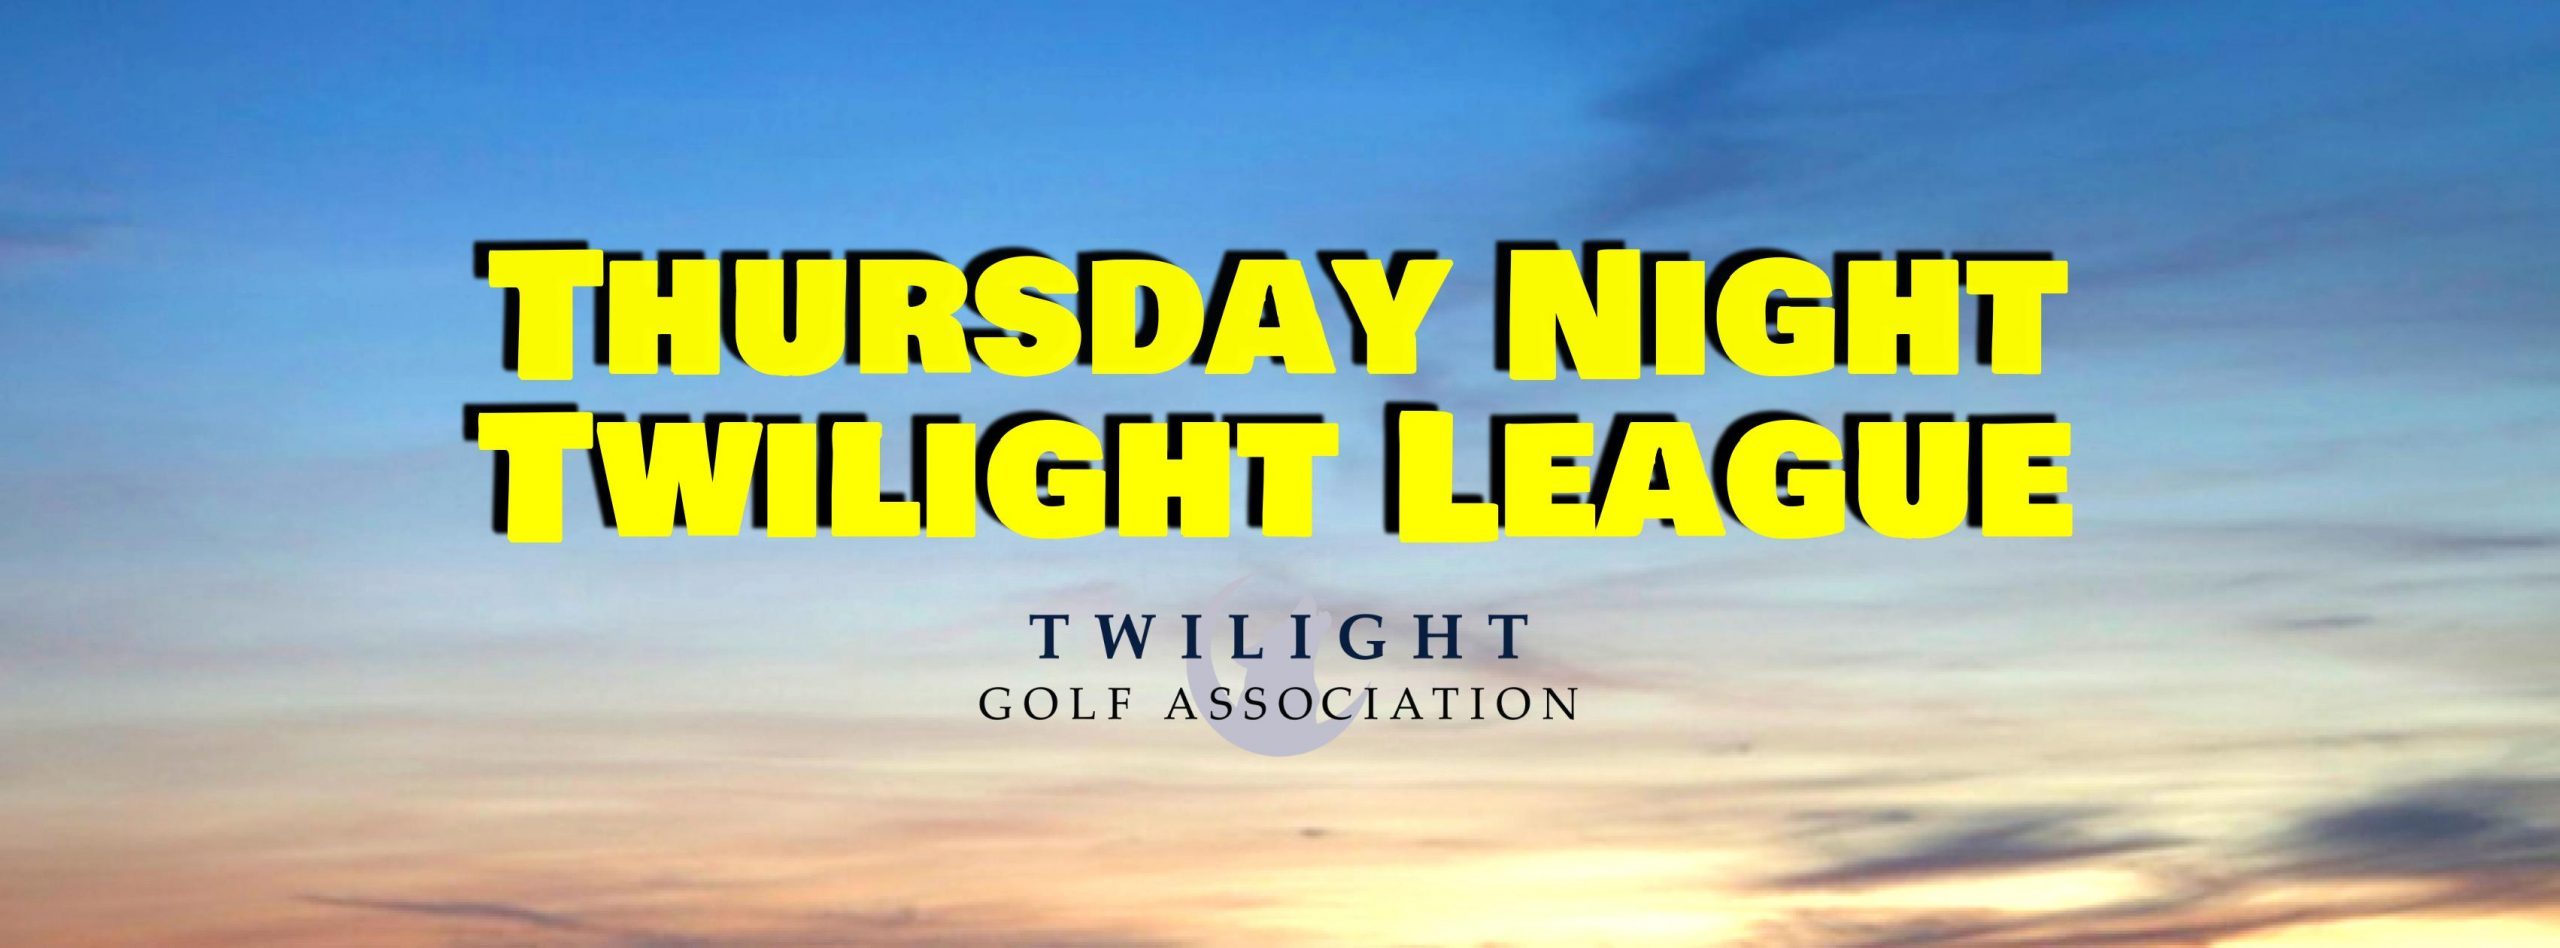 Thursday Night Twilight League at Stumpy Lake Golf Course